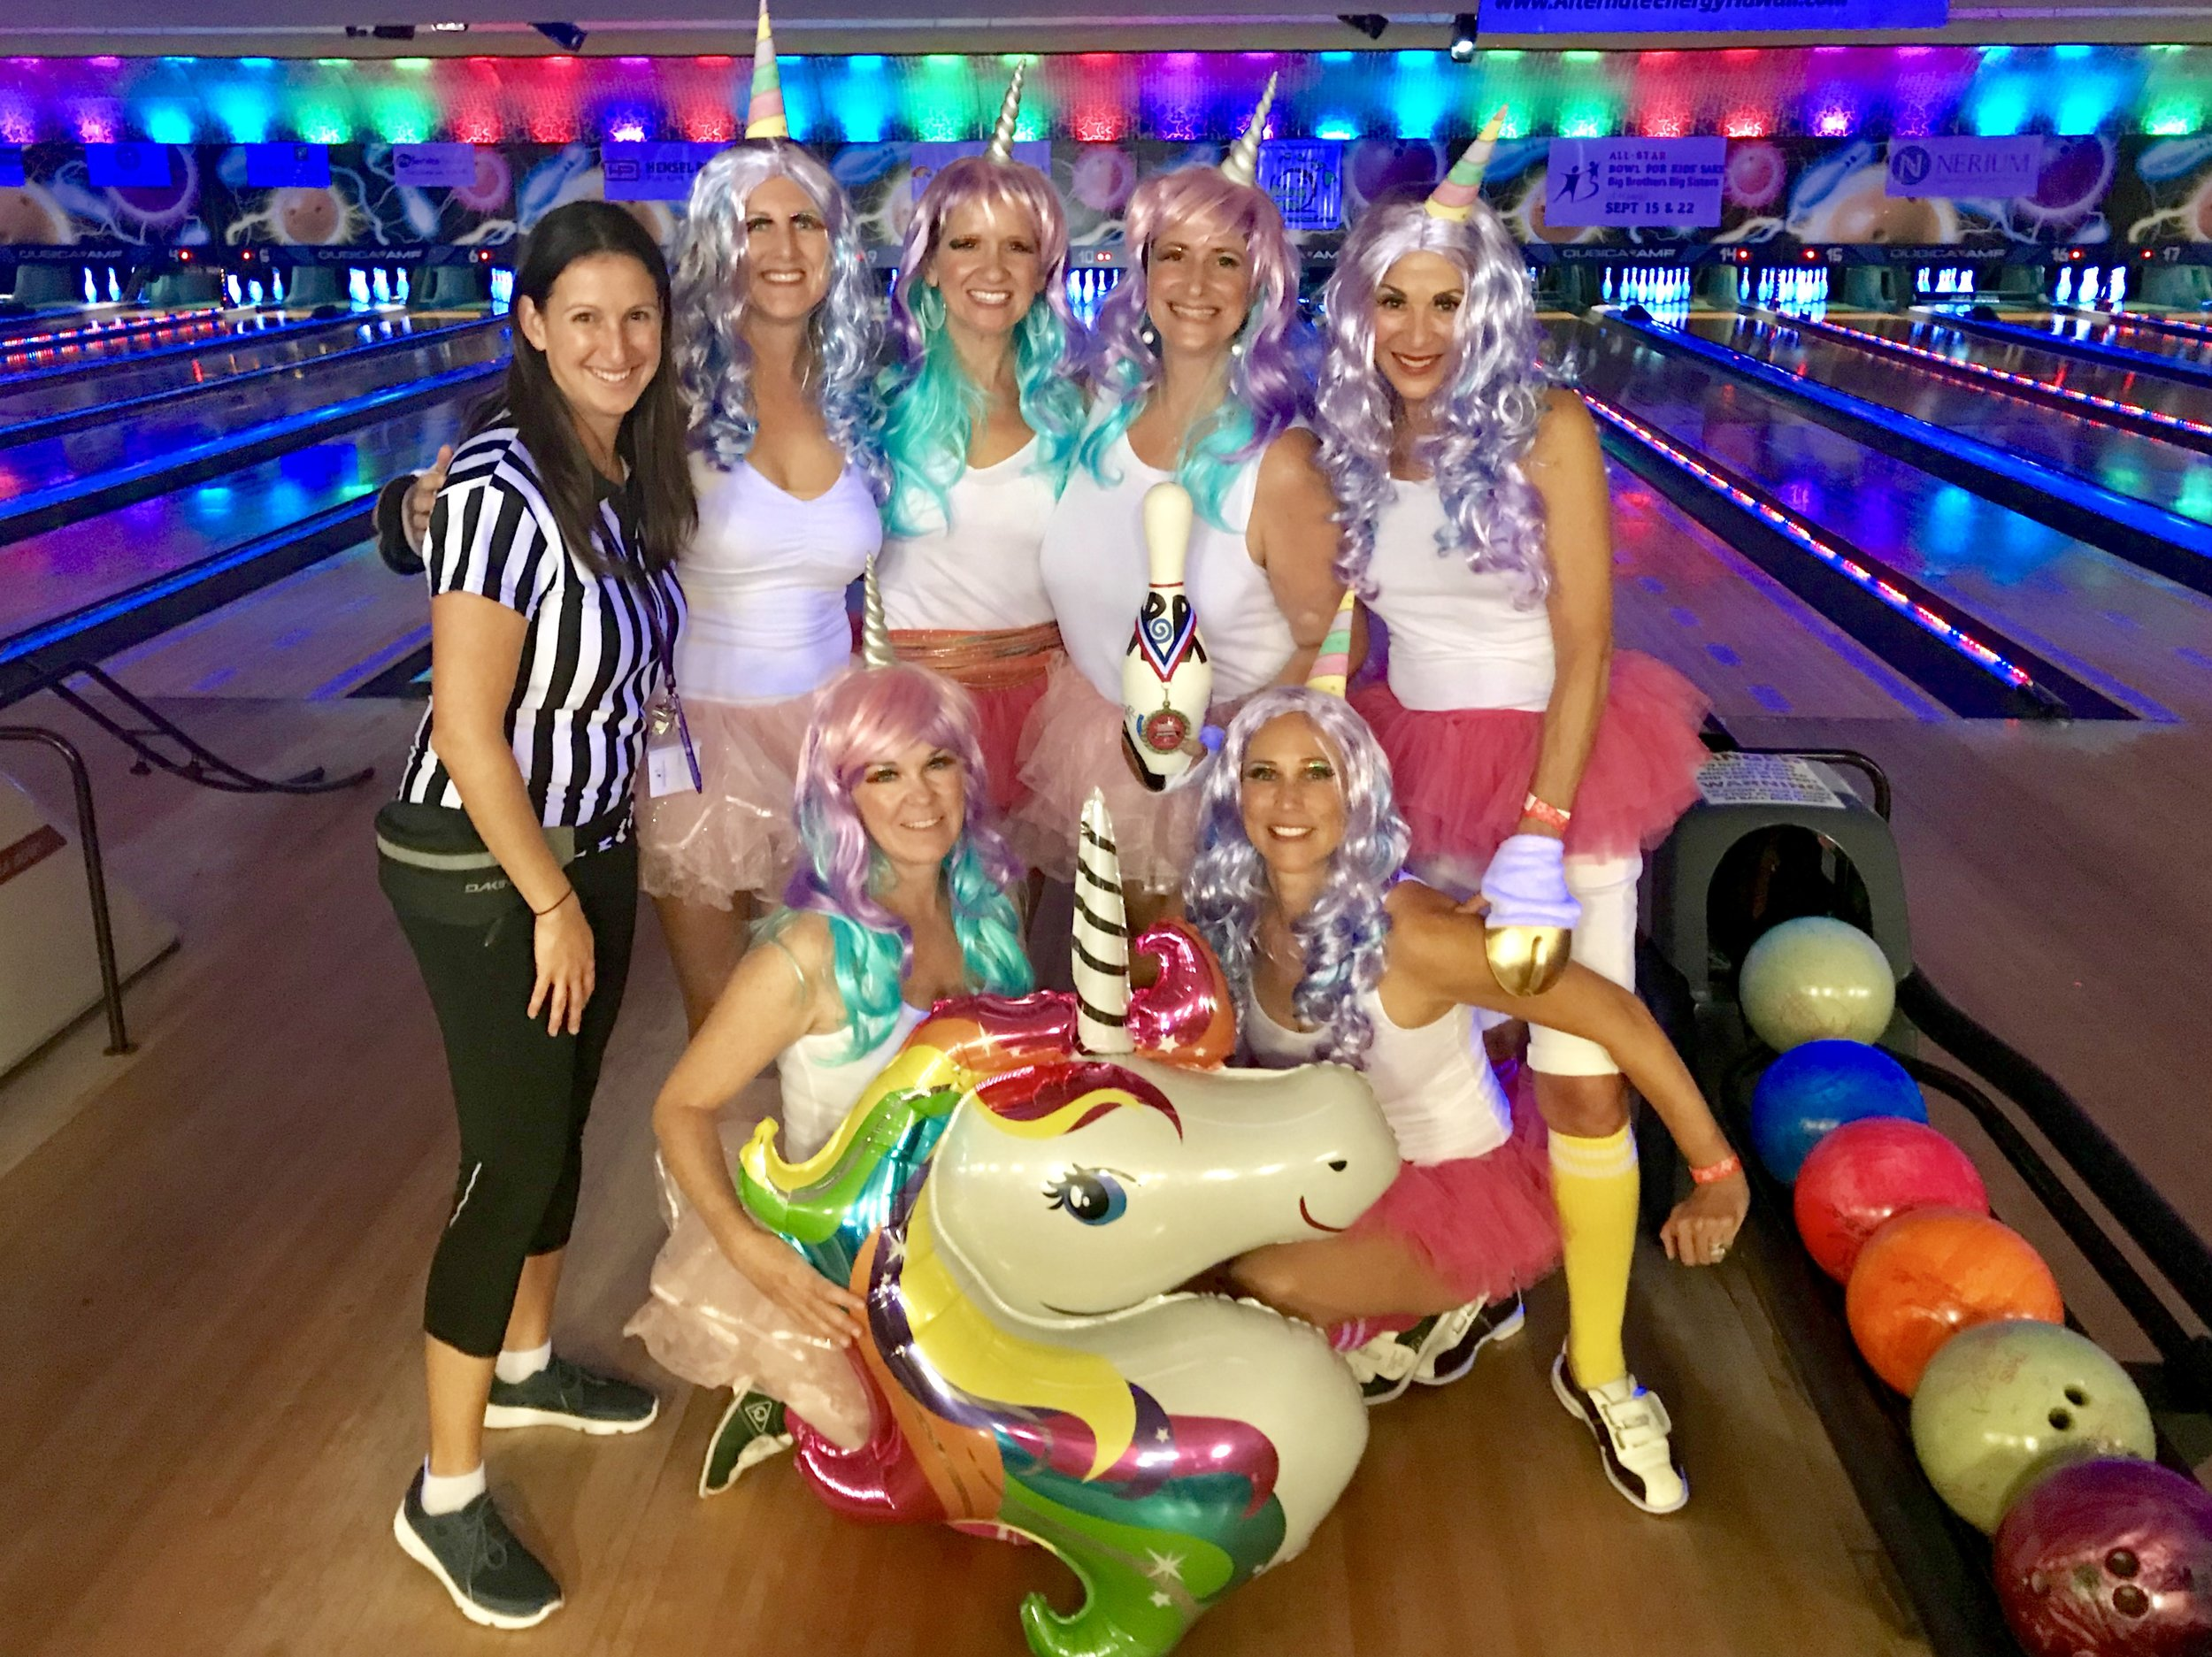 Mandy Trella of Big Brothers Big Sisters (left-Referee)  joins Monica Lau Photography (top row center-holding bowling pin) and the herd of Unicorns. Gina Loose, Gina Cargile, Marilee Mattson, Courtney Sibley, and Melissa Bruhl.